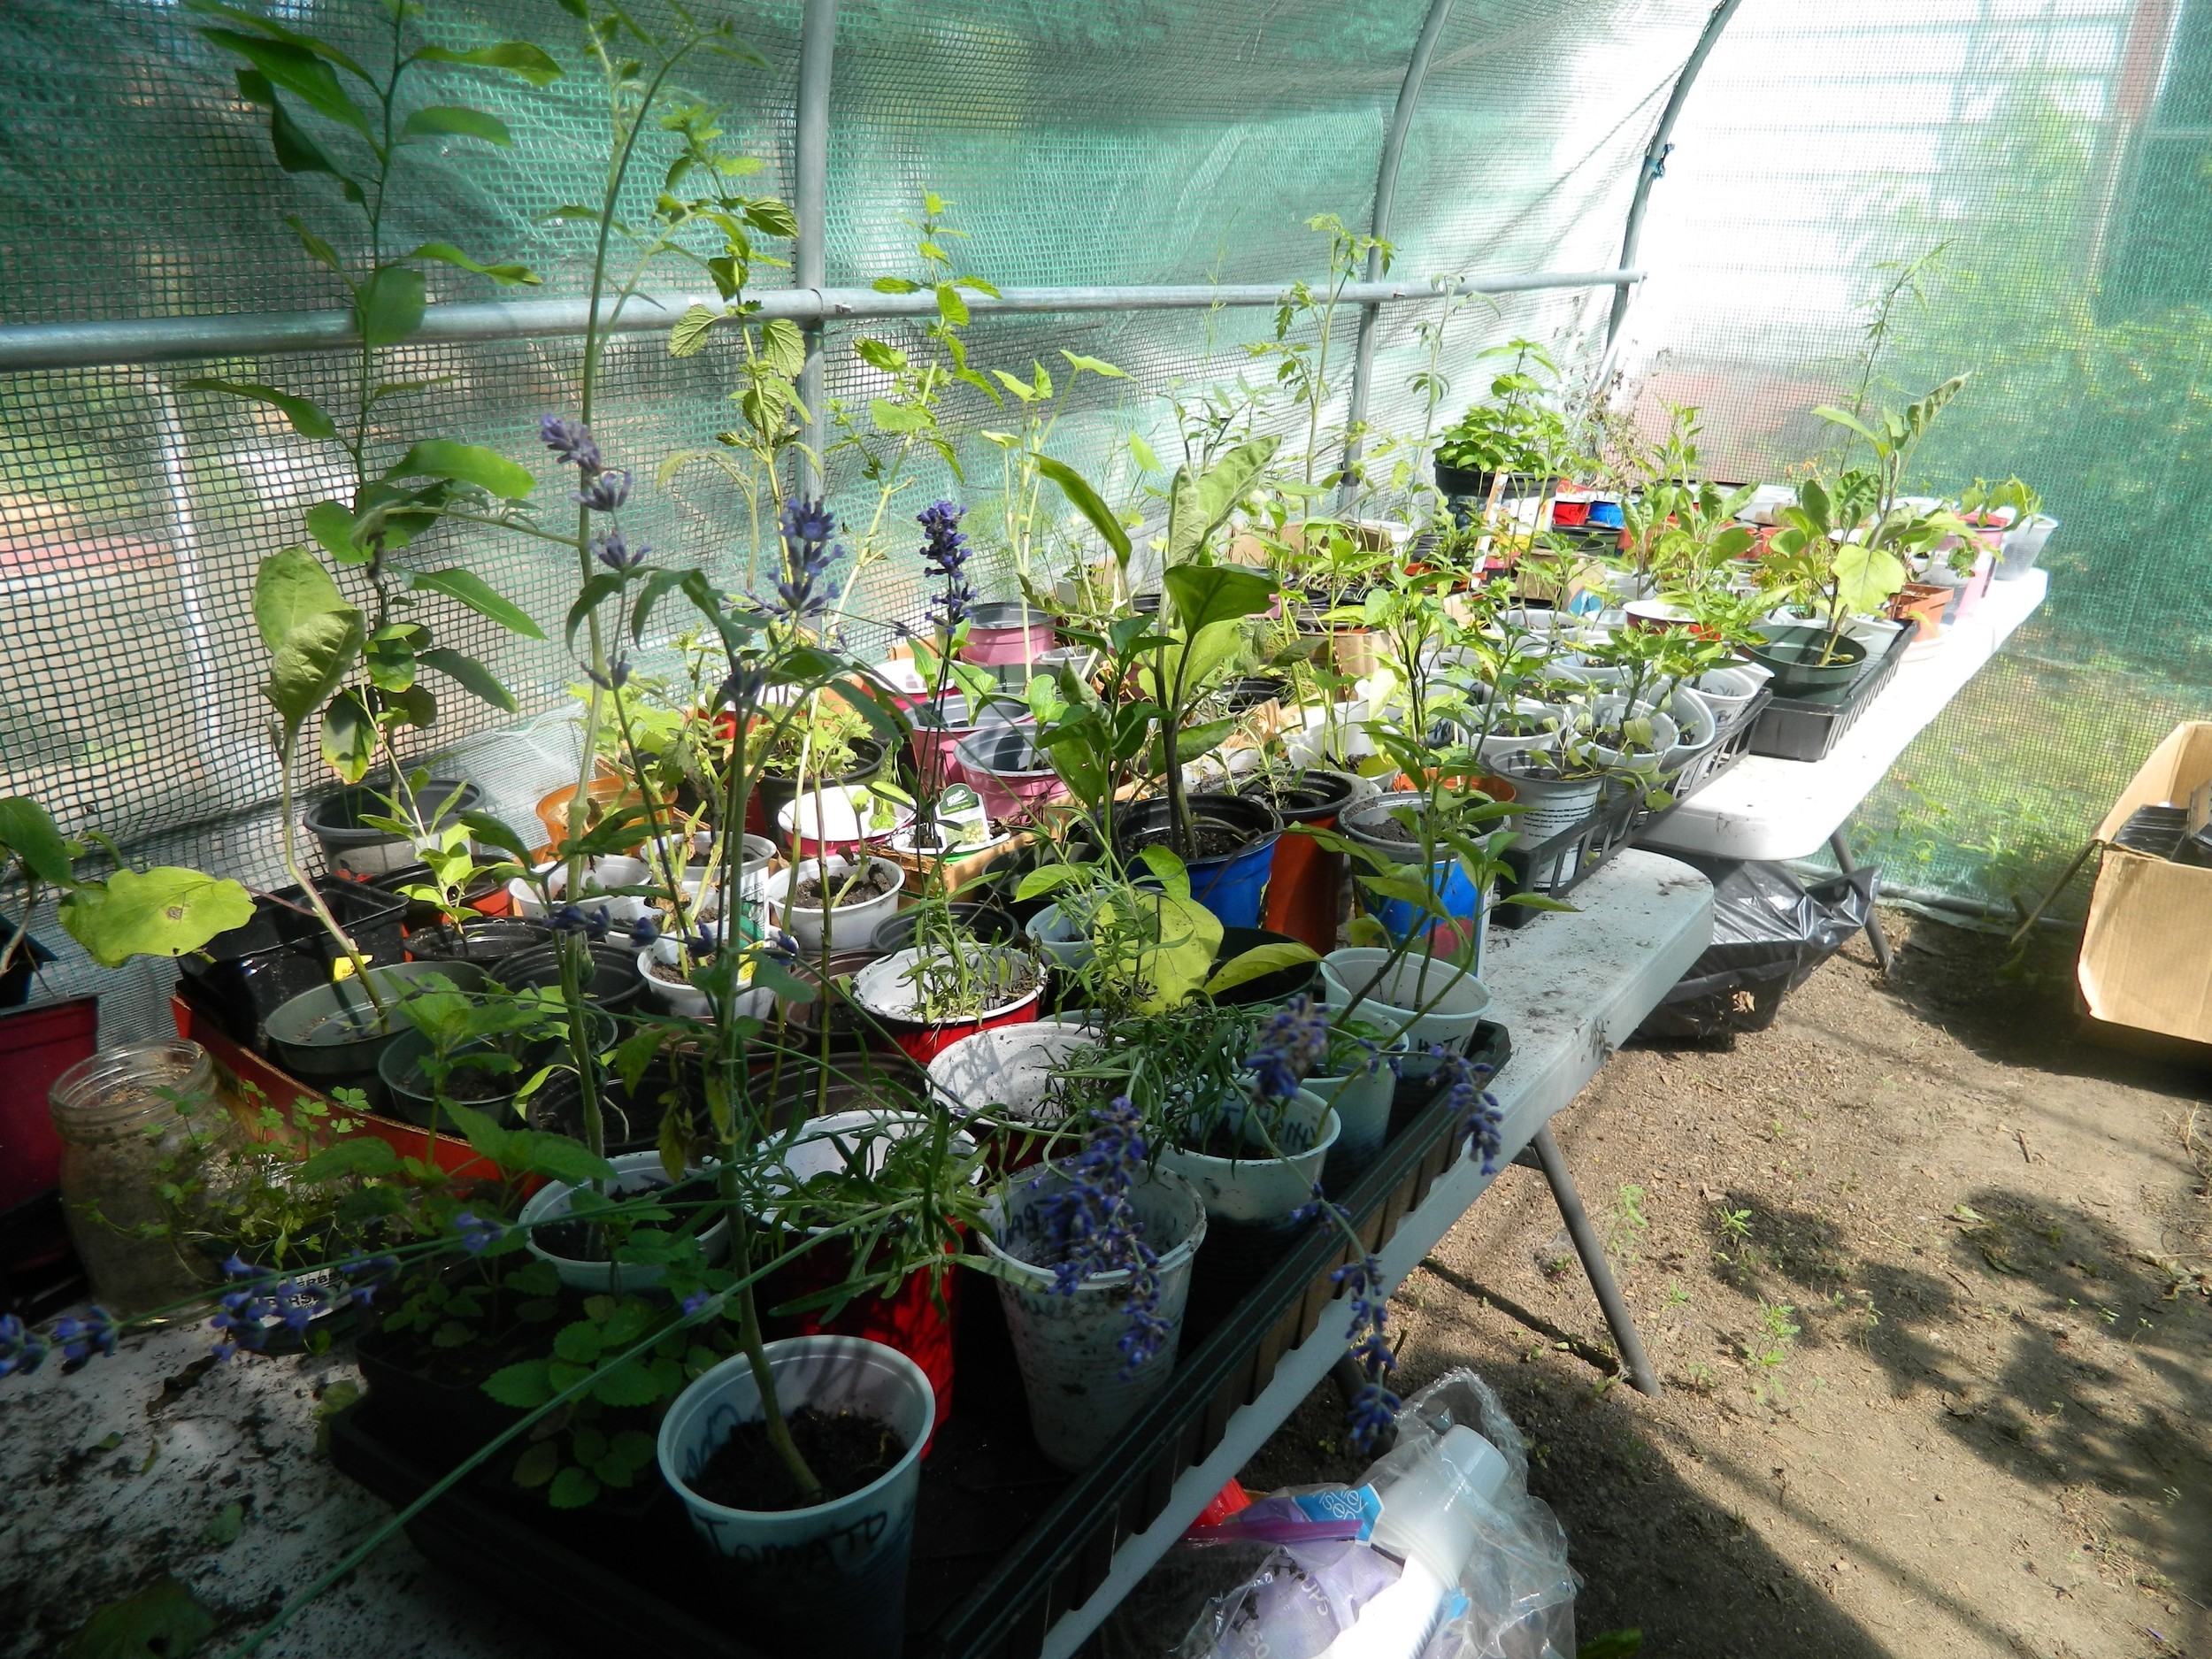 A greenhouse was added to the garden last year in order to produce seedlings as well as grow plants like lavender and basil.